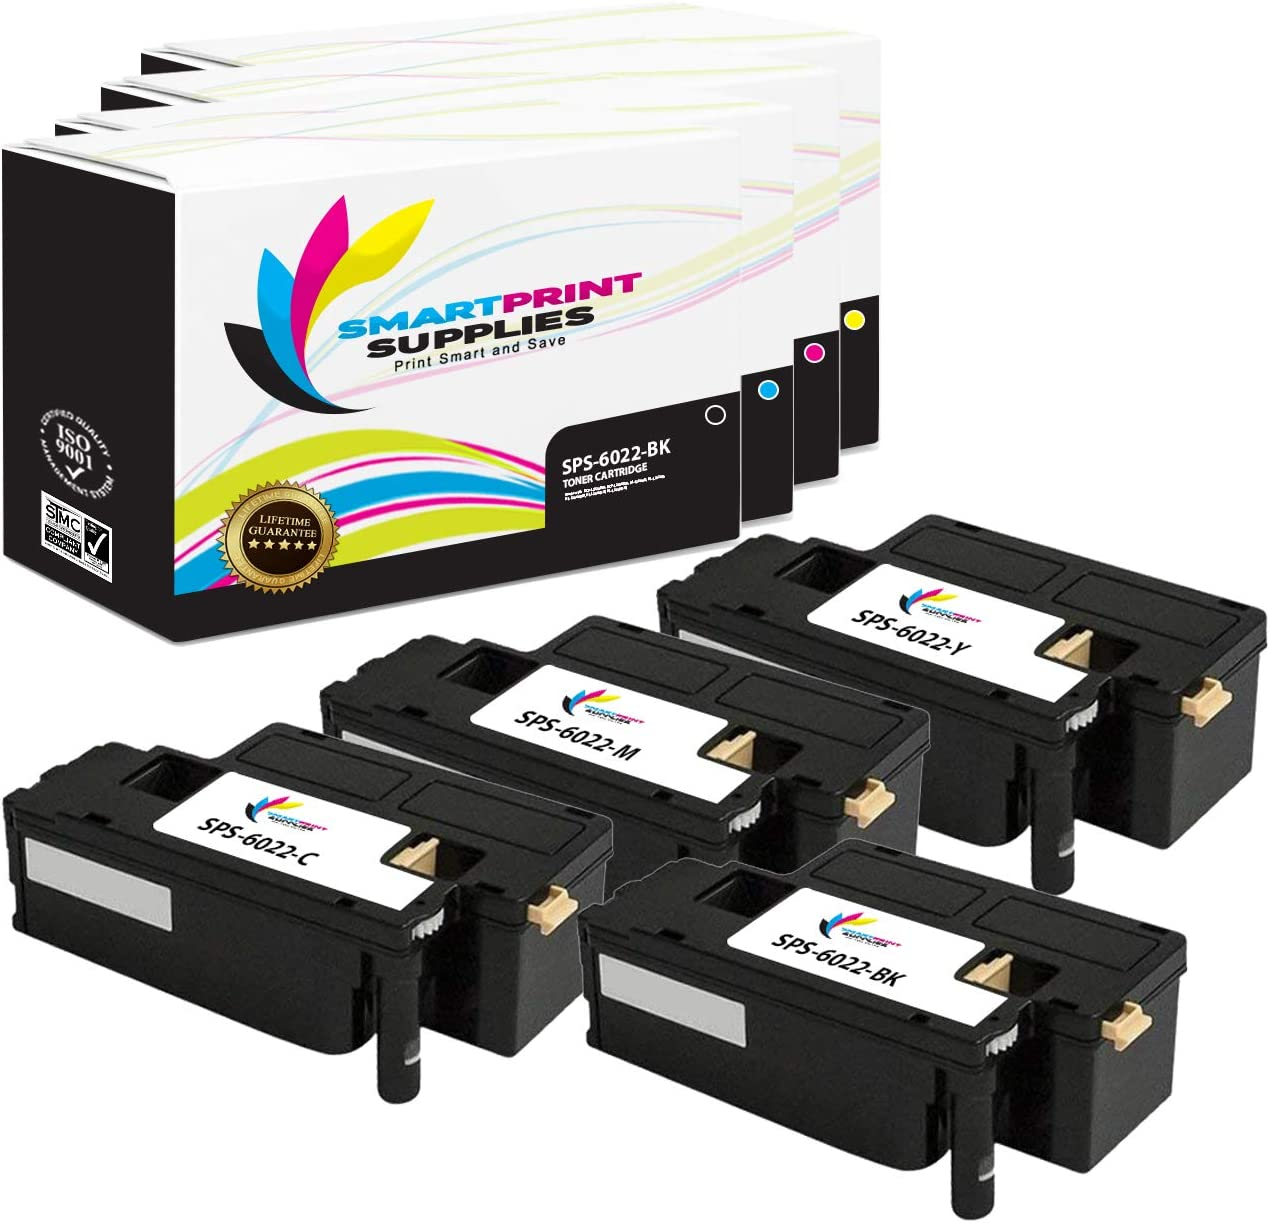 Smart Print Supplies 106R02759 106R02756 106R02757 106R02758 Compatible Toner Cartridge Replacement for Xerox Phaser 6022 - 4 Pack Black, Cyan, Magenta, Yellow Workcentre 6027 Printers